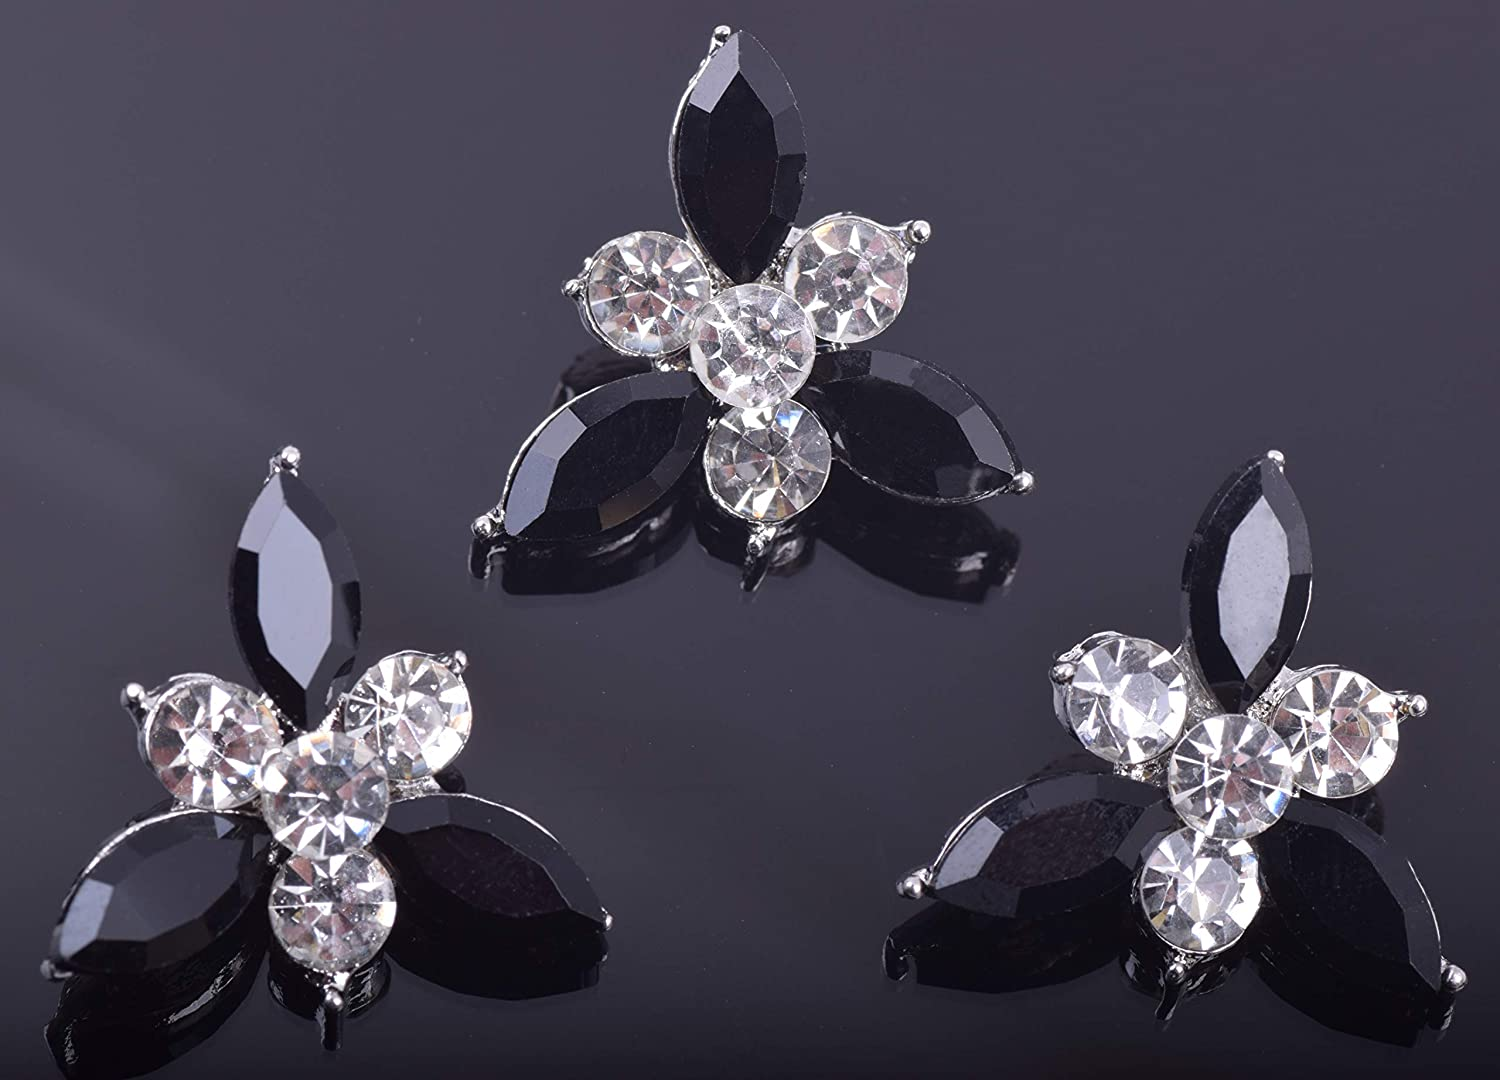 KAOYOO 10Pcs 21MM Crystal Rhinestone Buttons with Silver Plated Brass Base Clear and Black